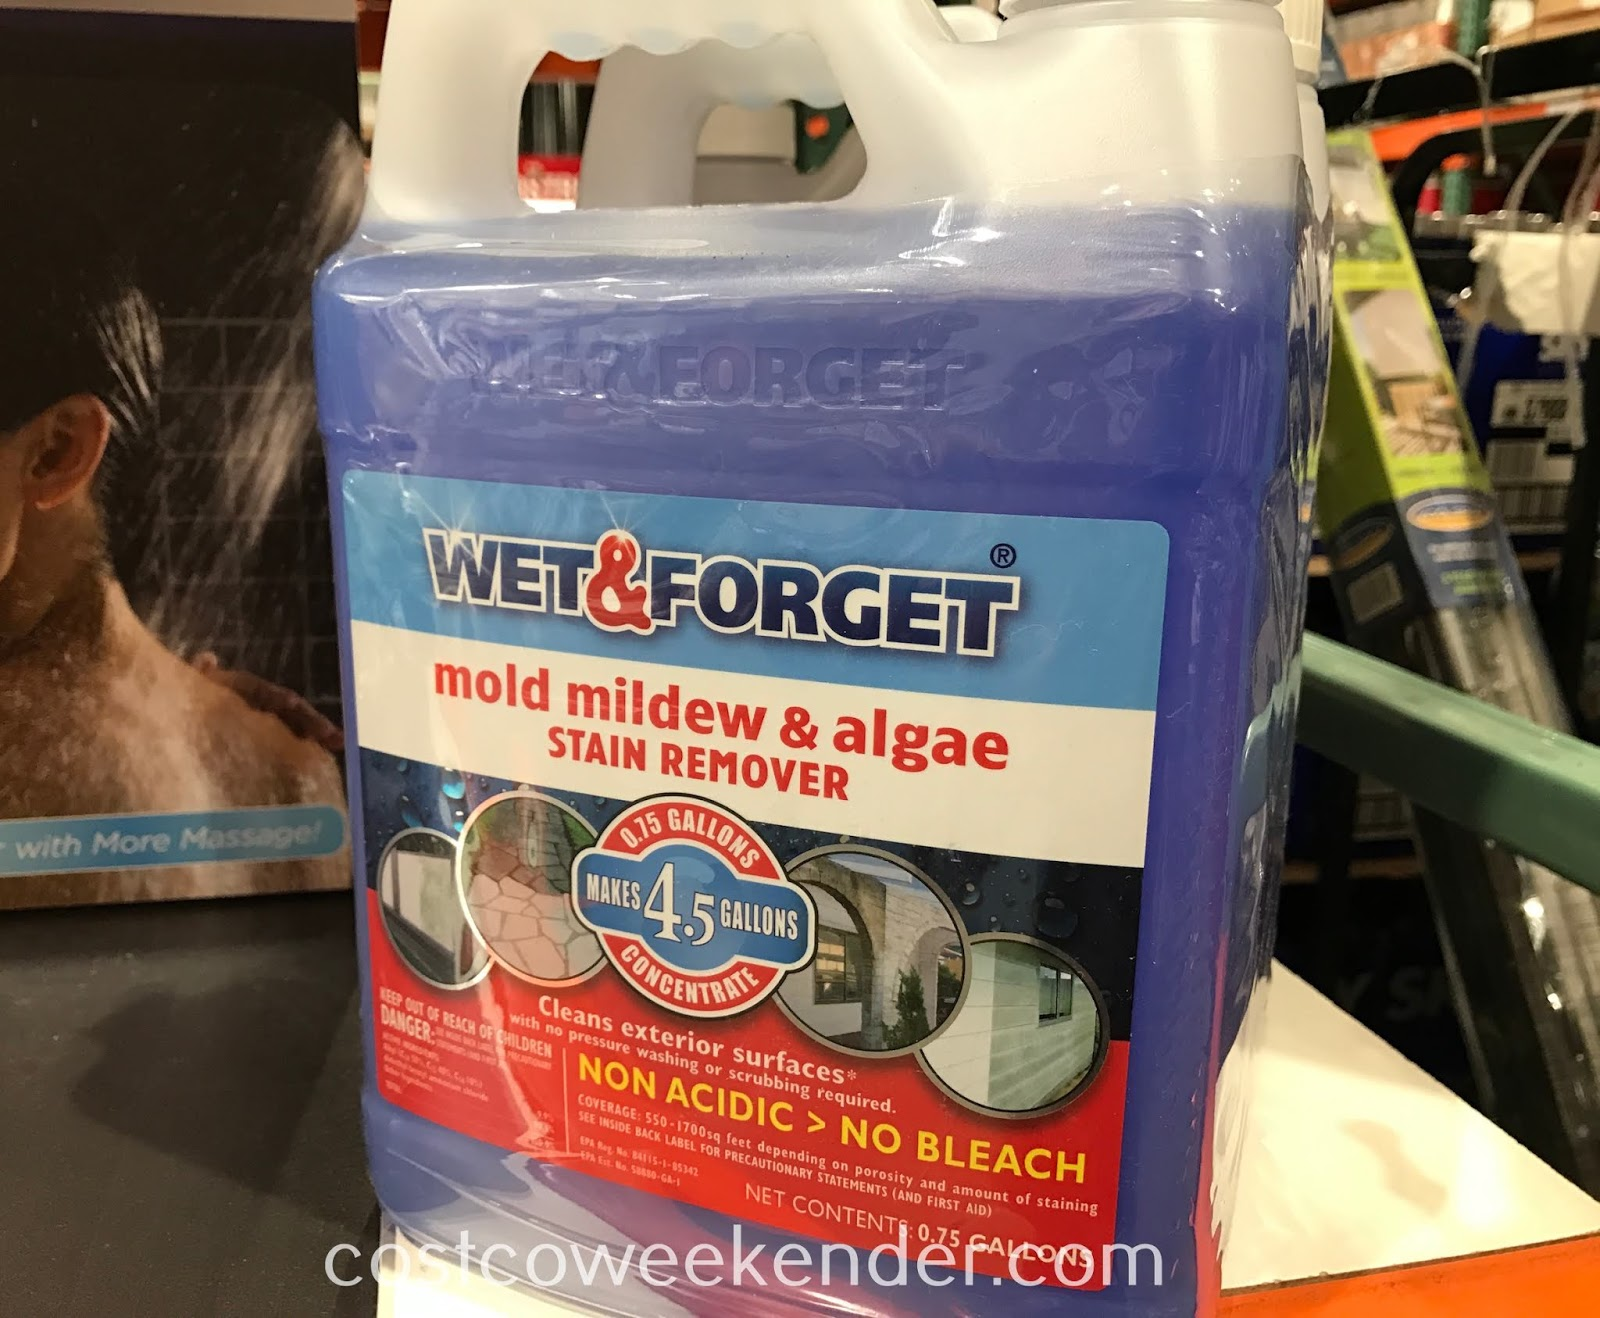 Clean the surfaces around your home with Wet & Forget Mold Mildew & Algae Stain Remover